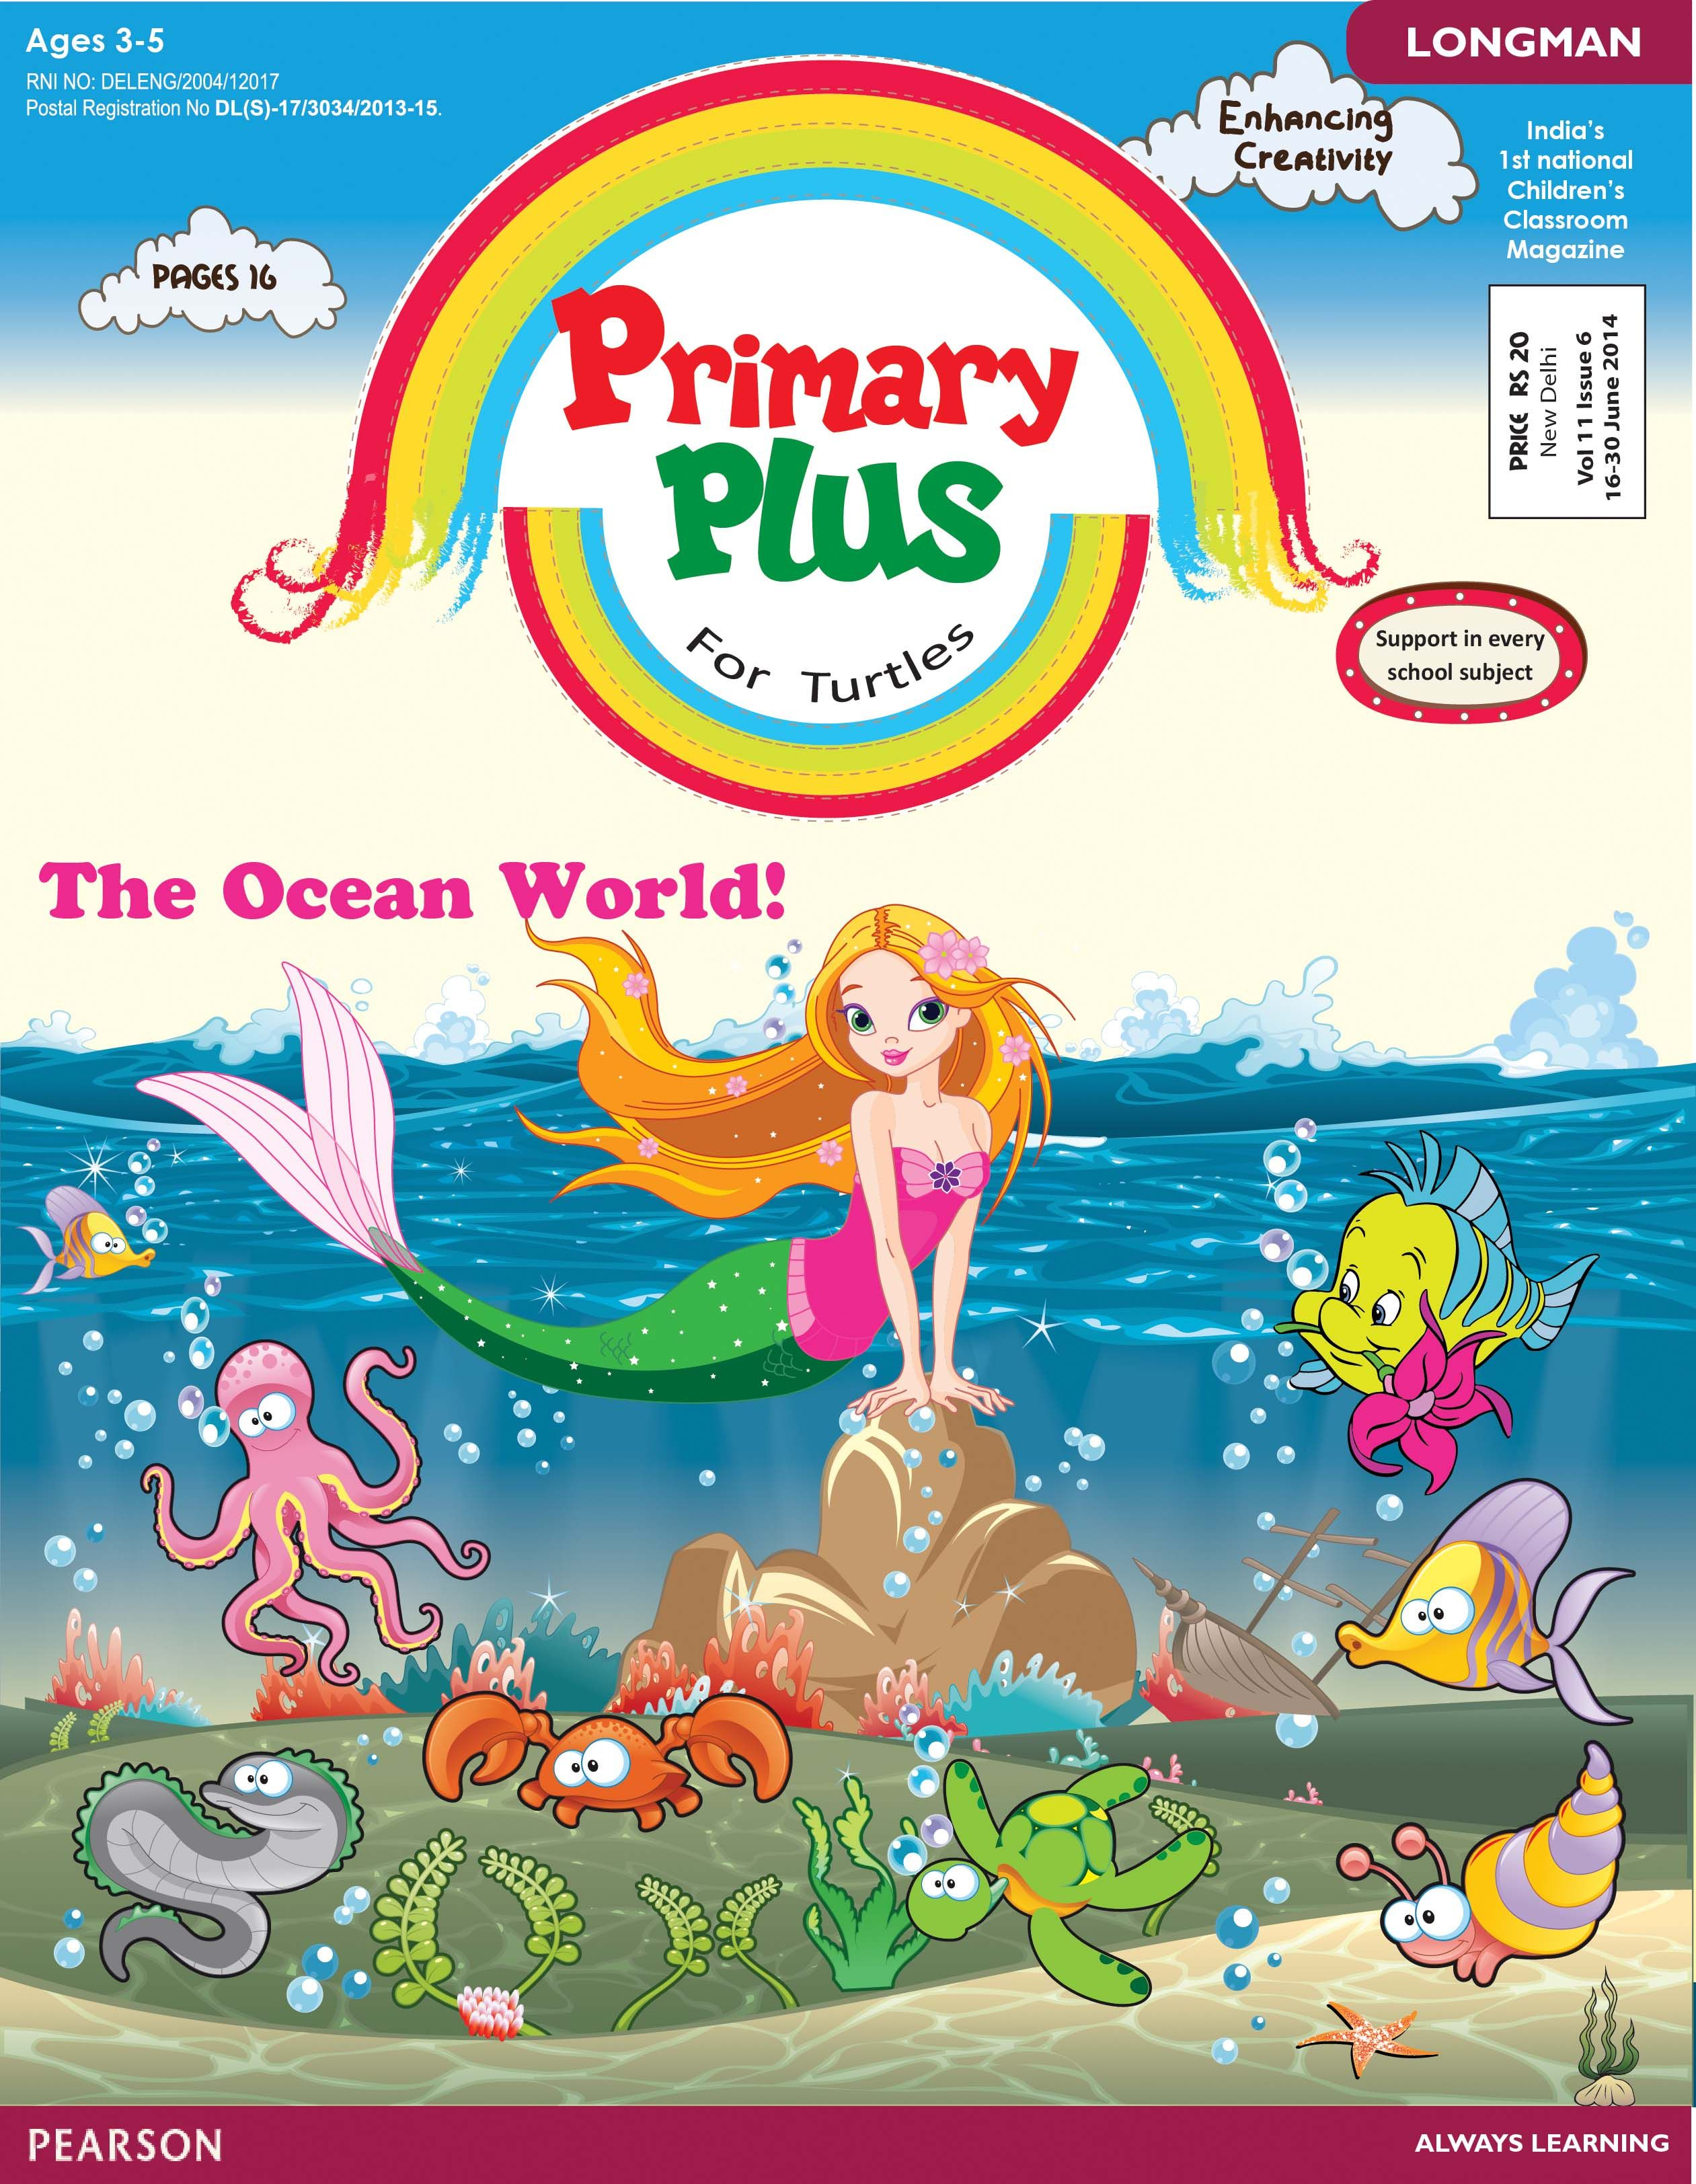 Primary Plus Turtle Issue Ii June 2014 Cover Page Primary